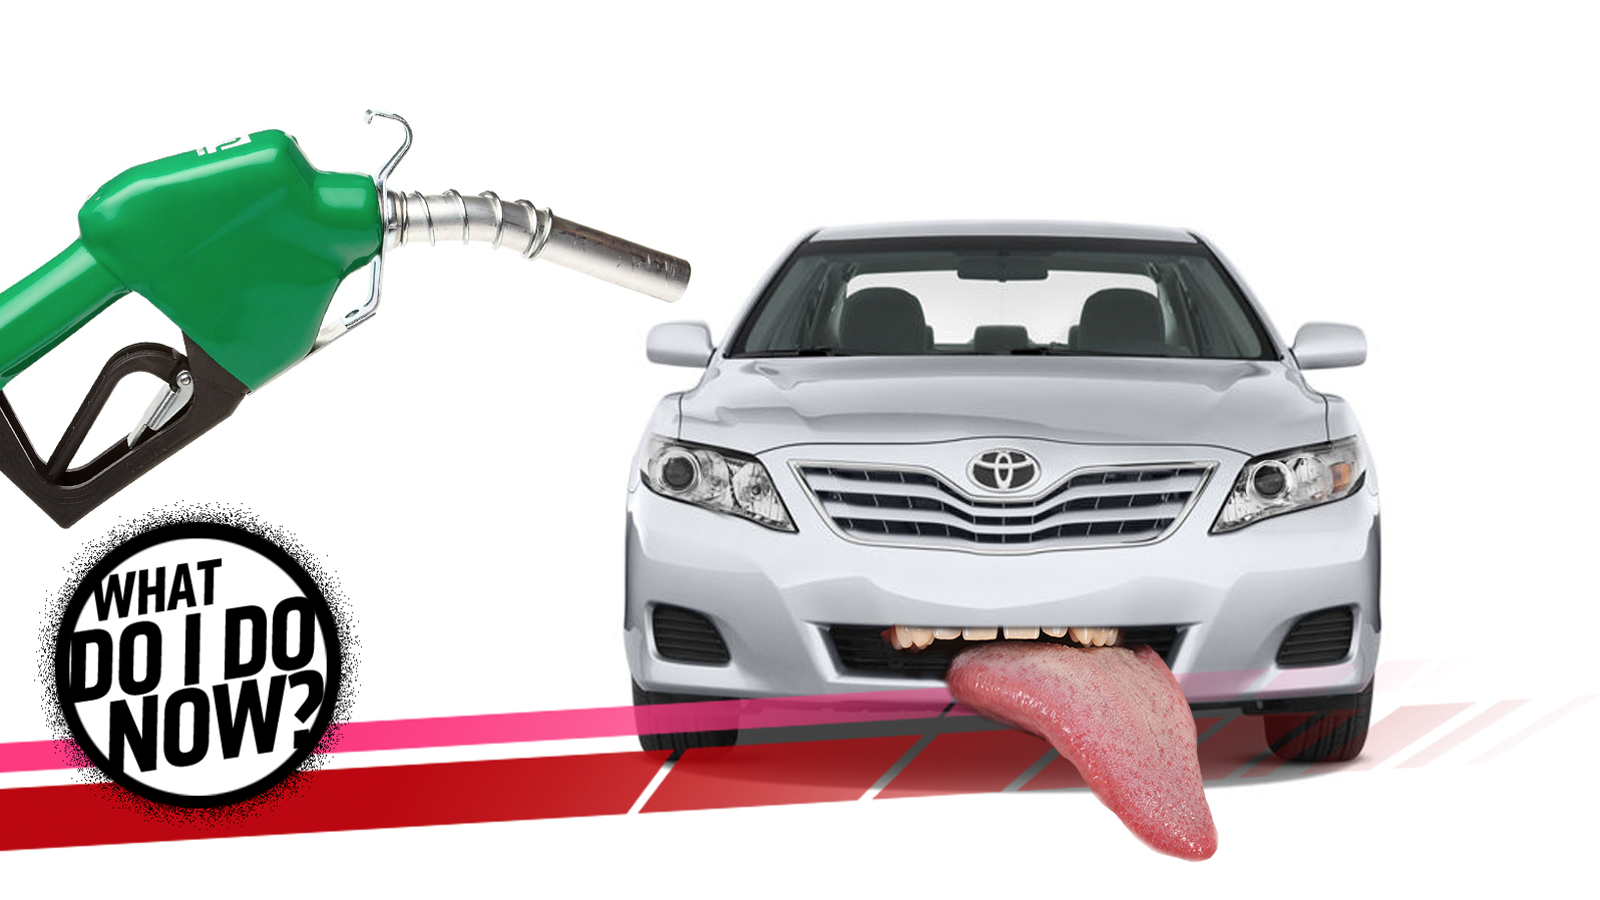 Toyota Camry: Fuel tank opening for unleaded gasoline